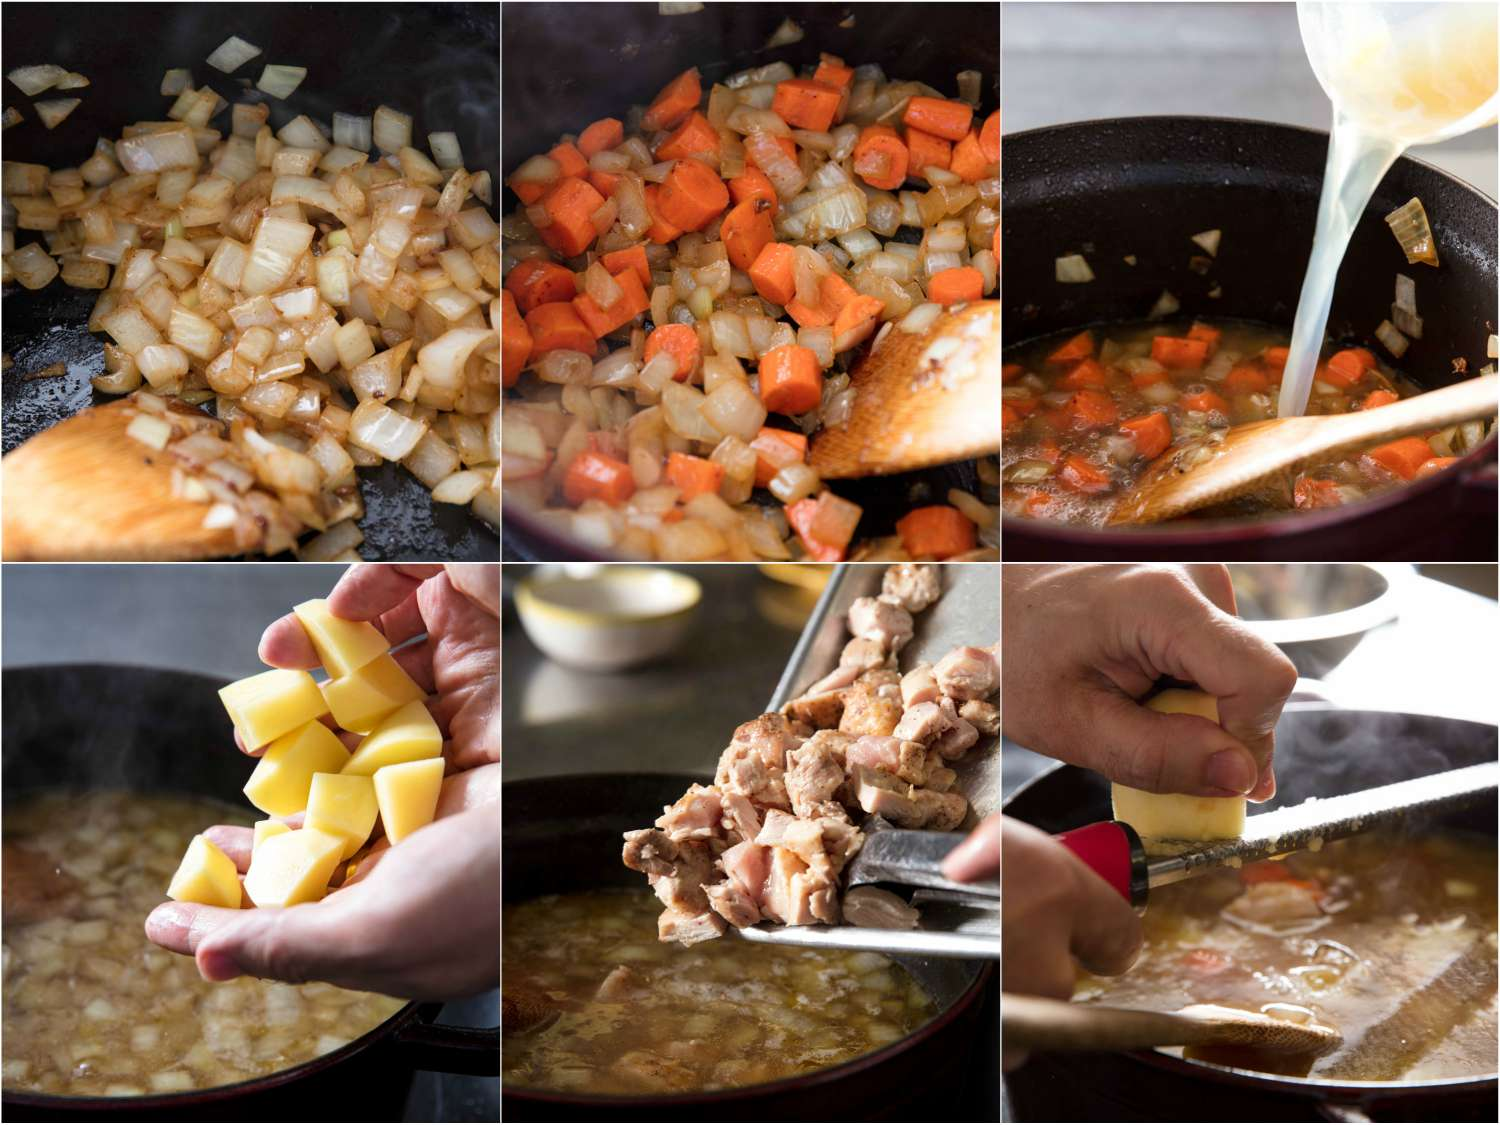 20171127-japanese-curry-vicky-wasik-collage1.jpg